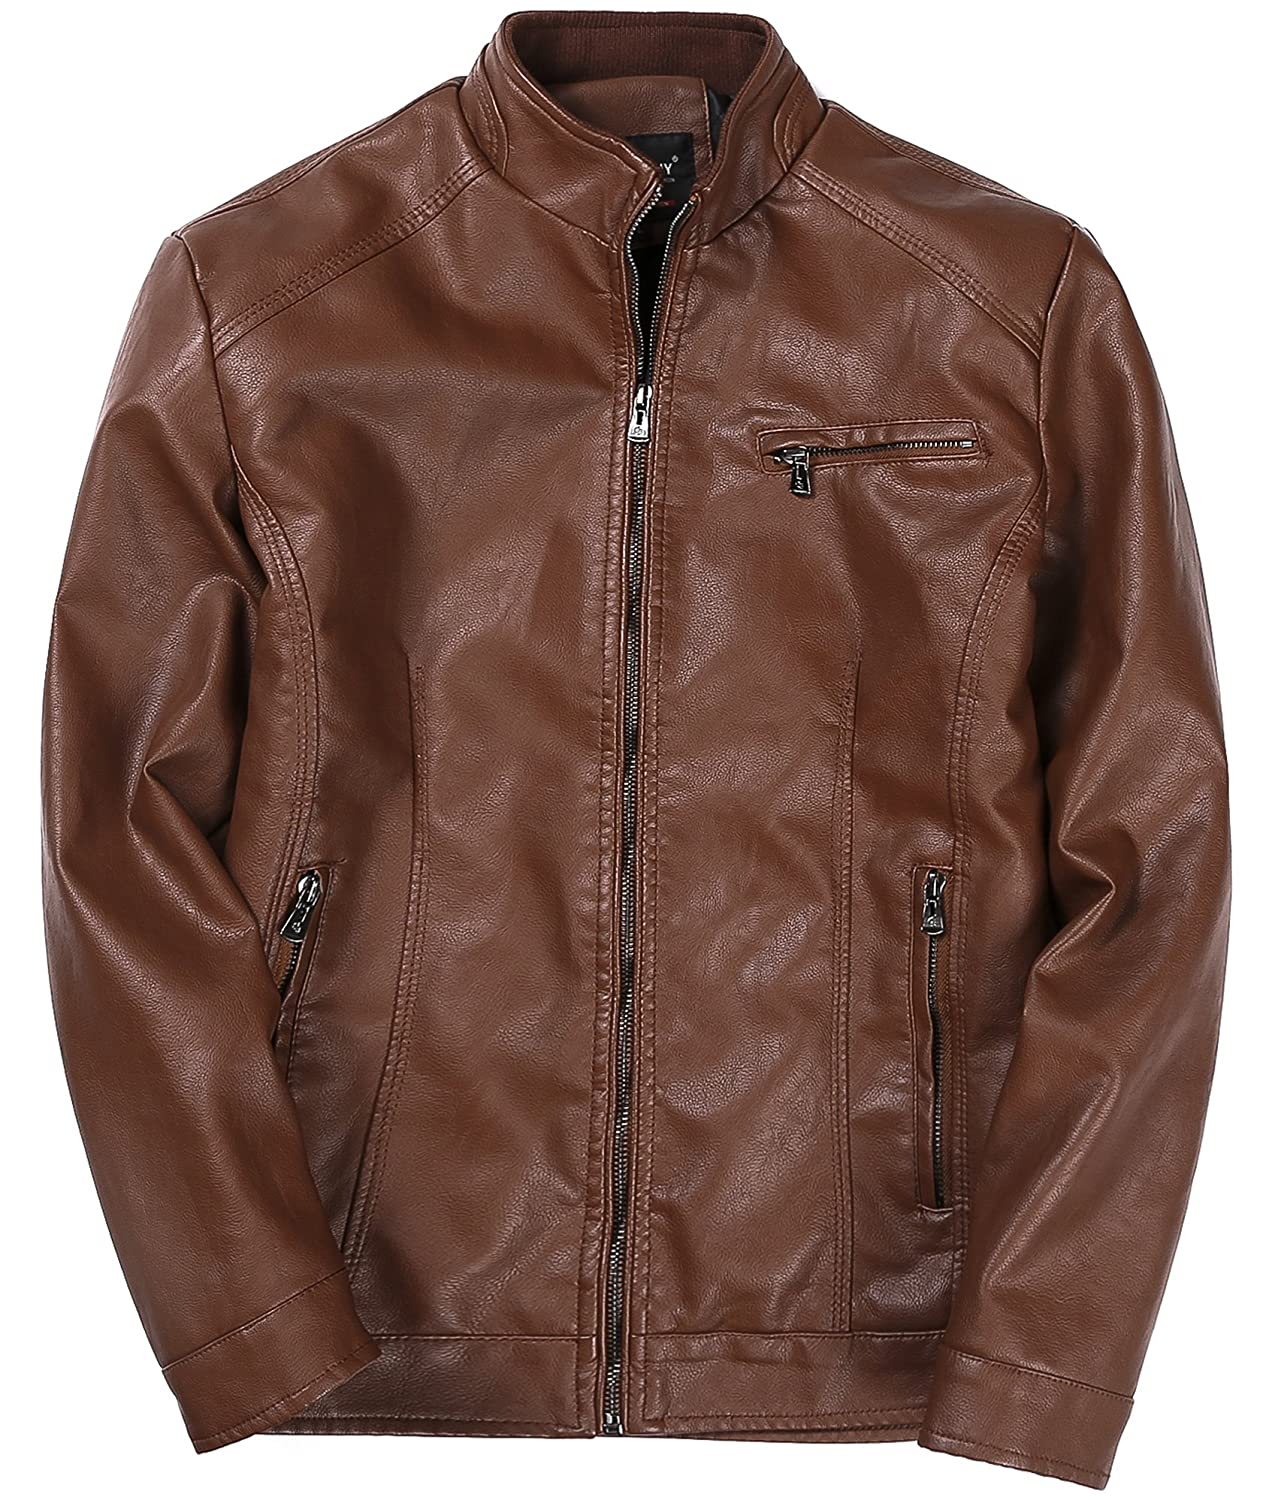 AYG Mens Ultra-fine Fiber Leather Thickening Jacket with Brand New Motorcycle Coat Designer Style(Brown/Black)B16